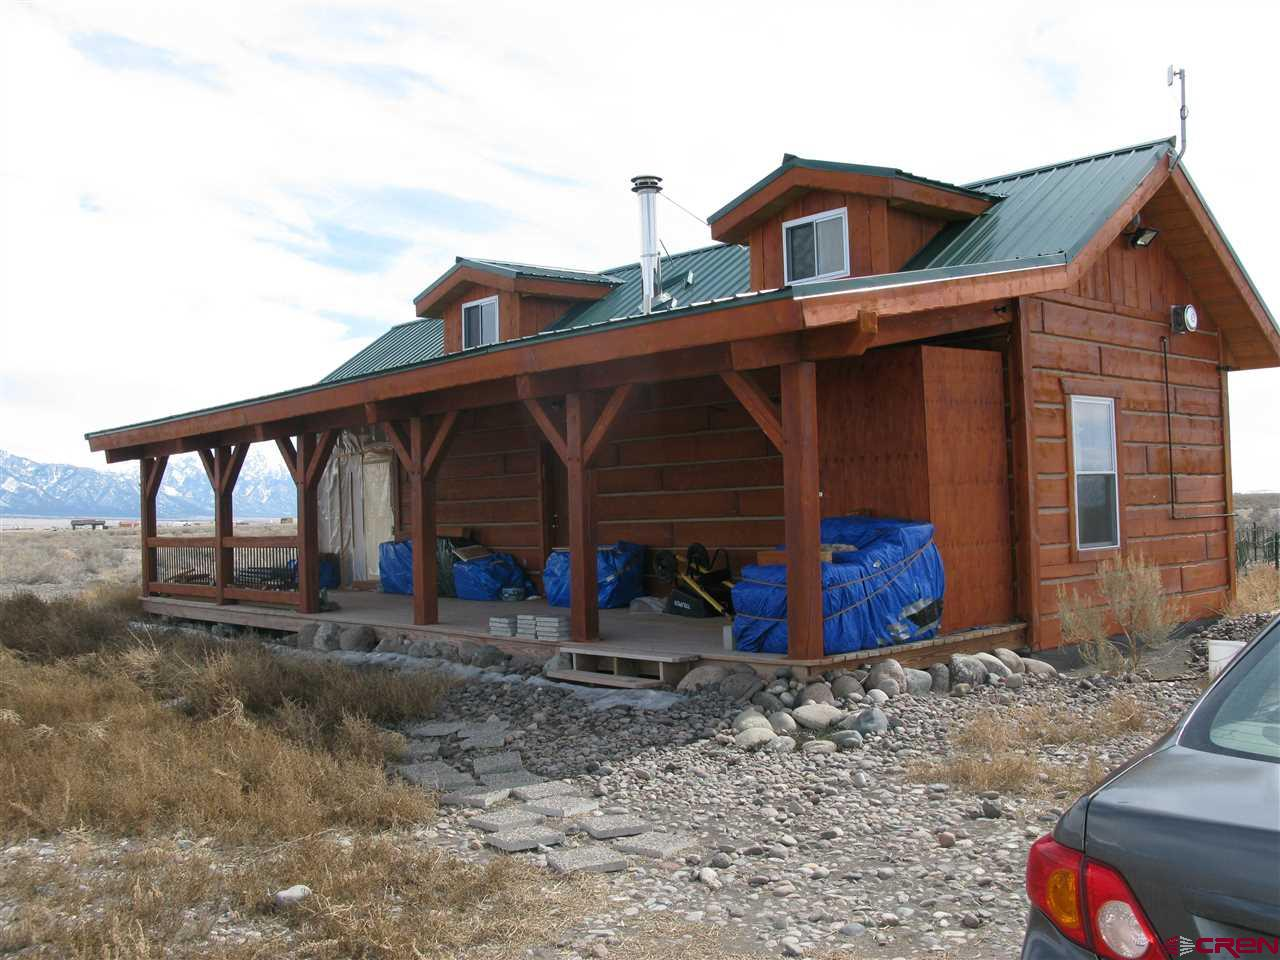 MLS# 767667 - 2 - 57254 Golden Hill Ave , Moffat, CO 81143